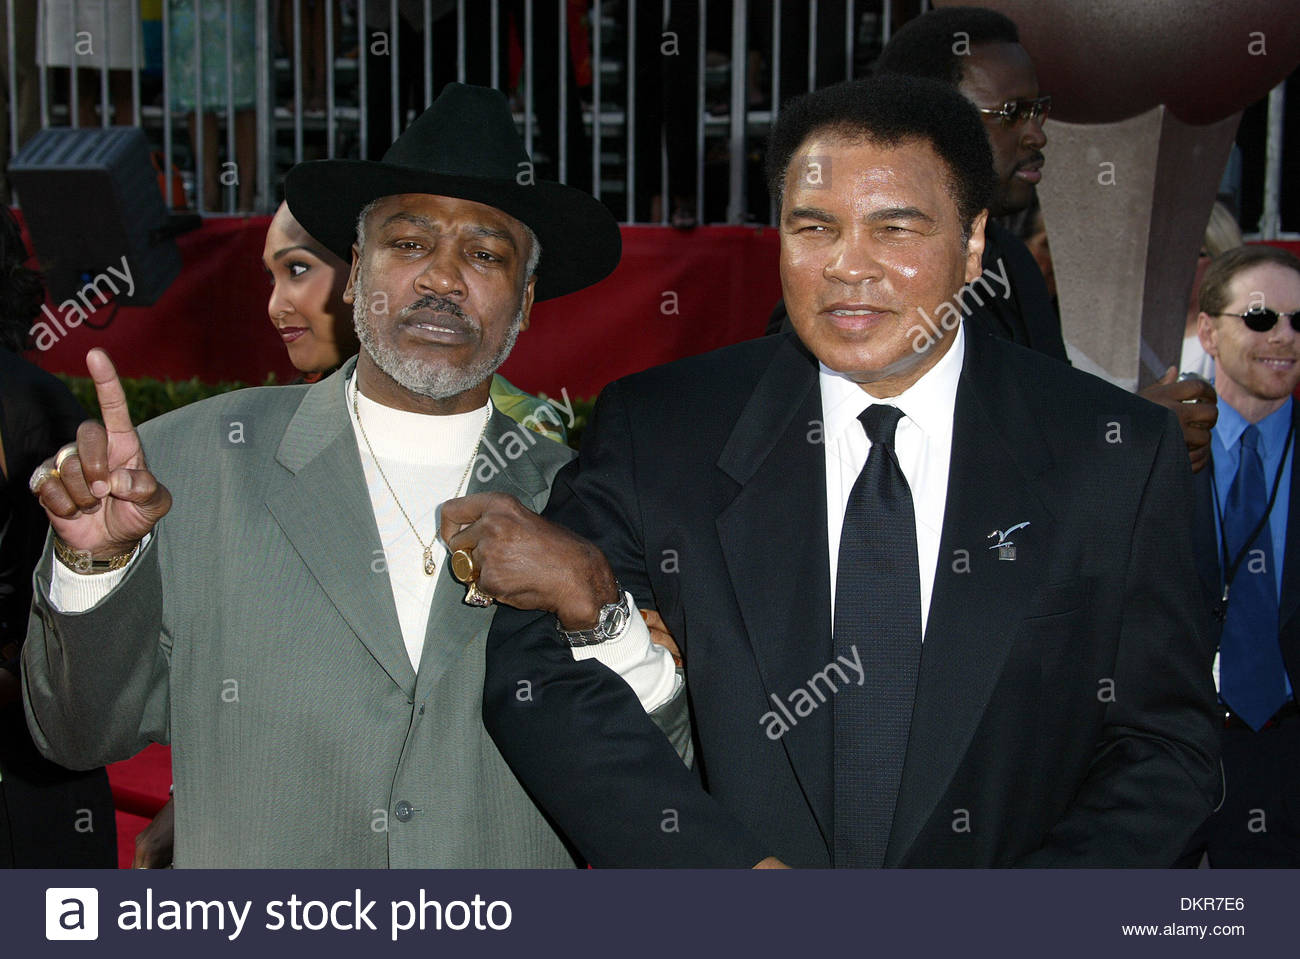 July 10, 2002 - Hollywood, California, U.S. - Boxing greats MUHAMMAD ALI and JOE FRAZIER share a laugh on the red Stock Photo